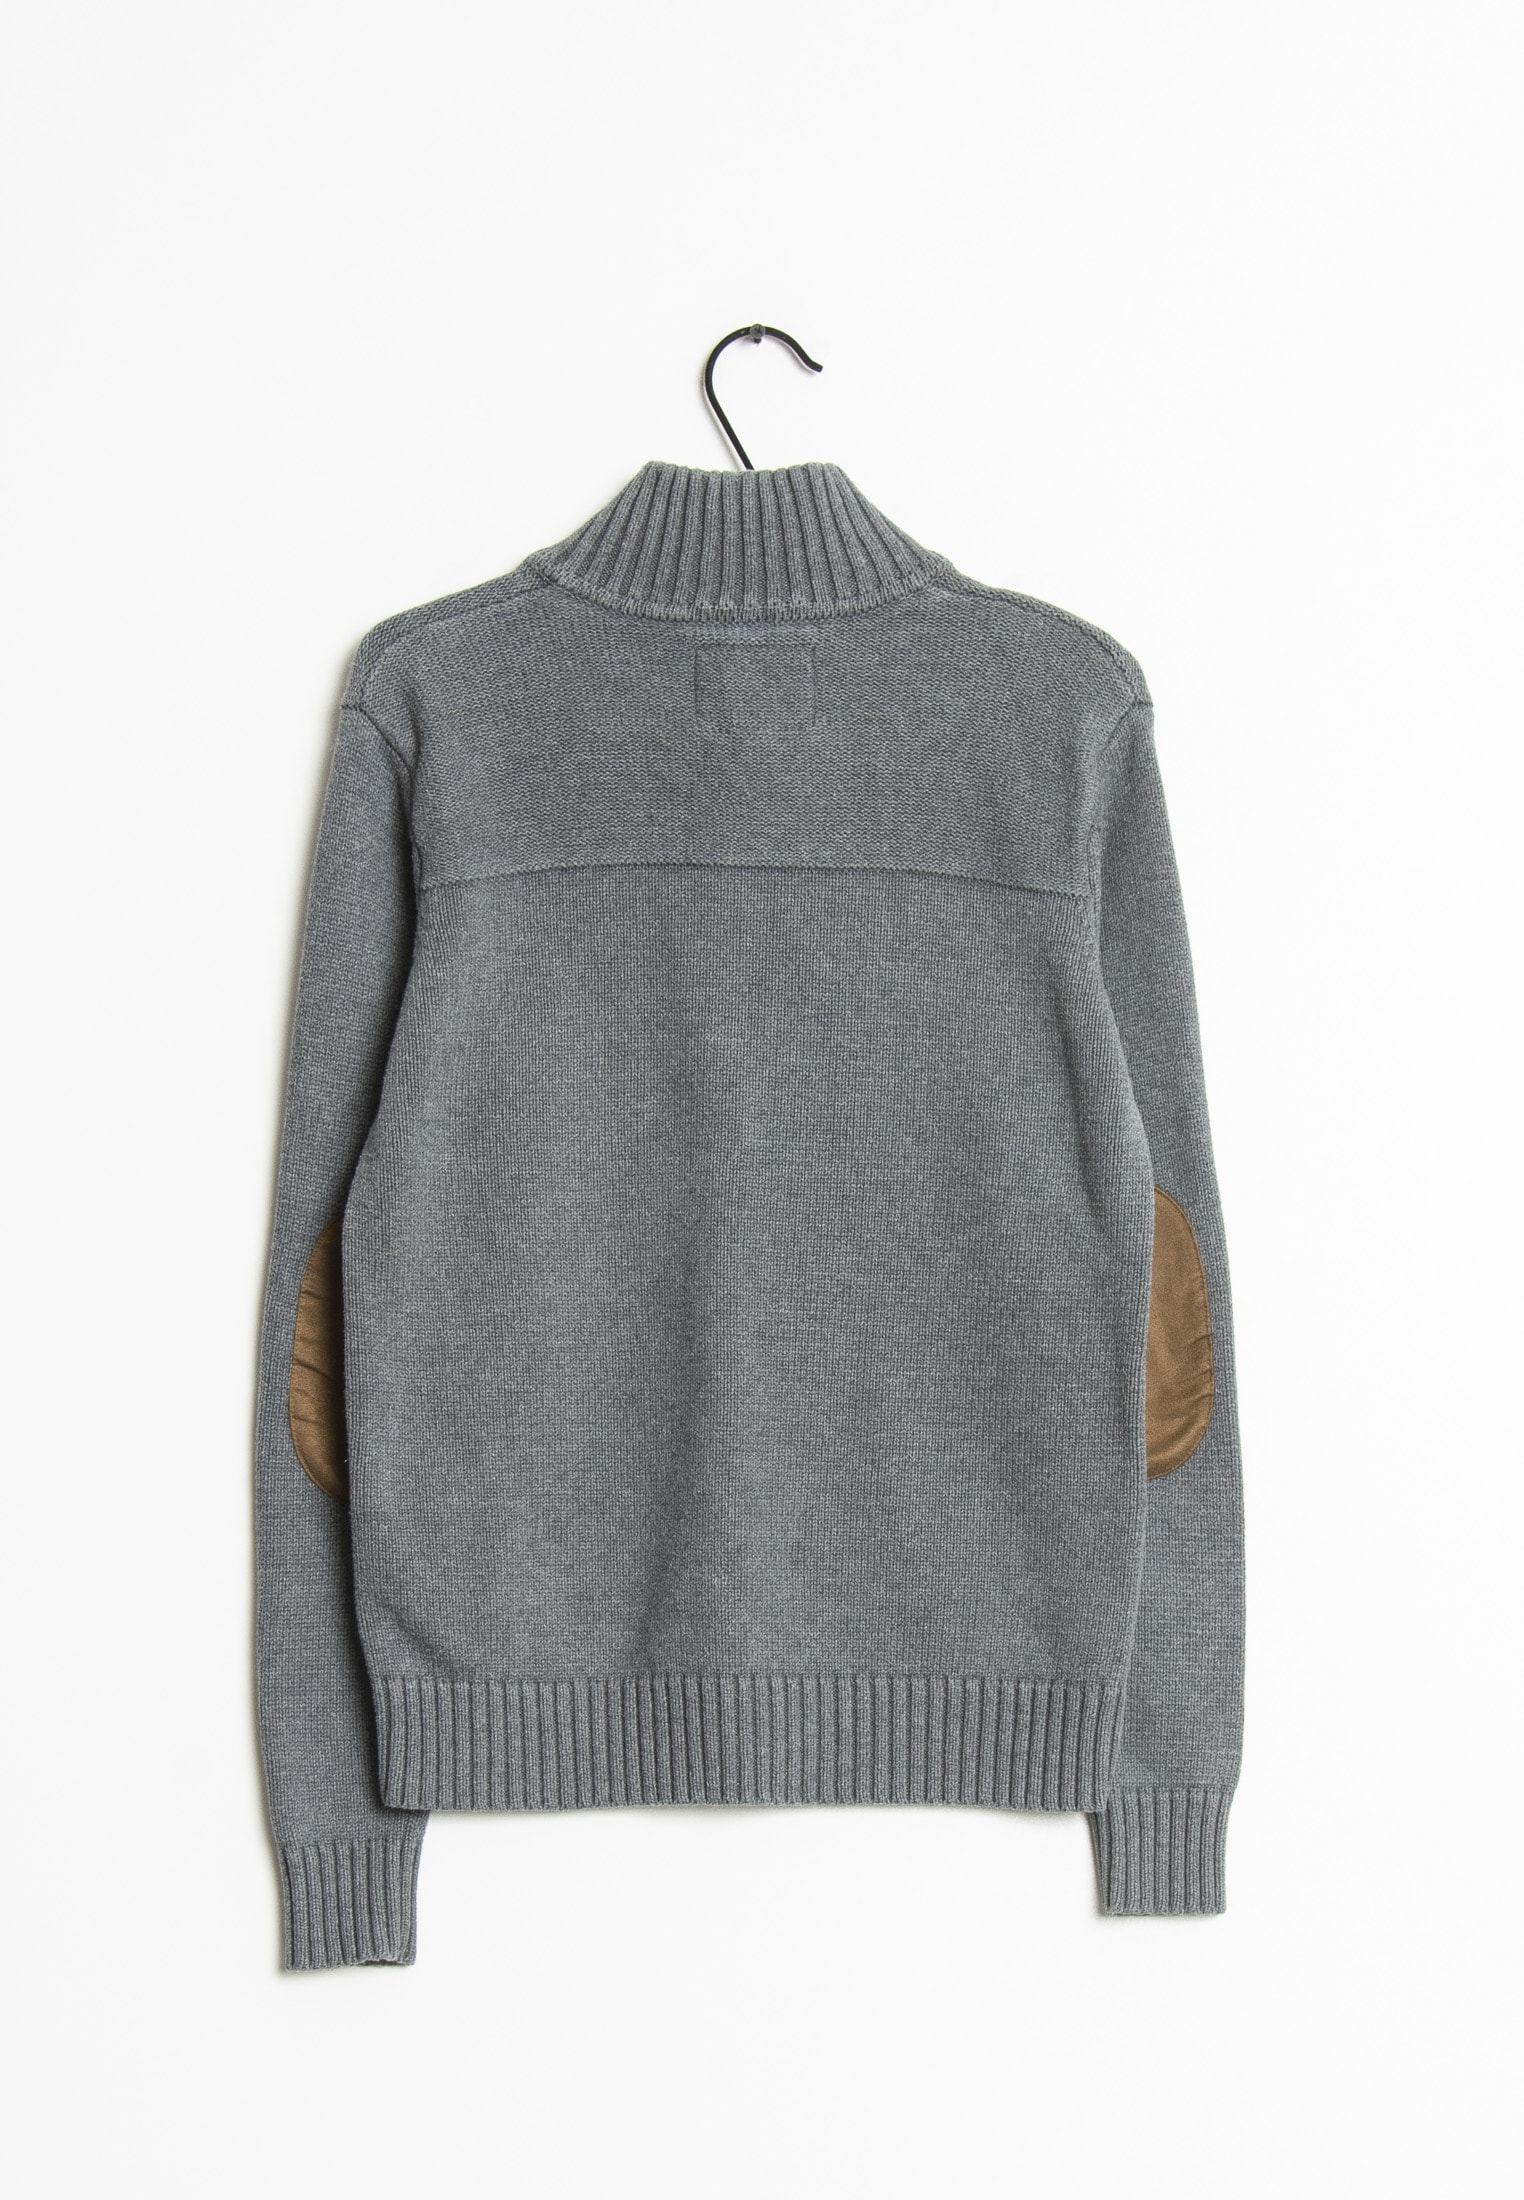 Jack & Jones Strickpullover Grau Gr.S